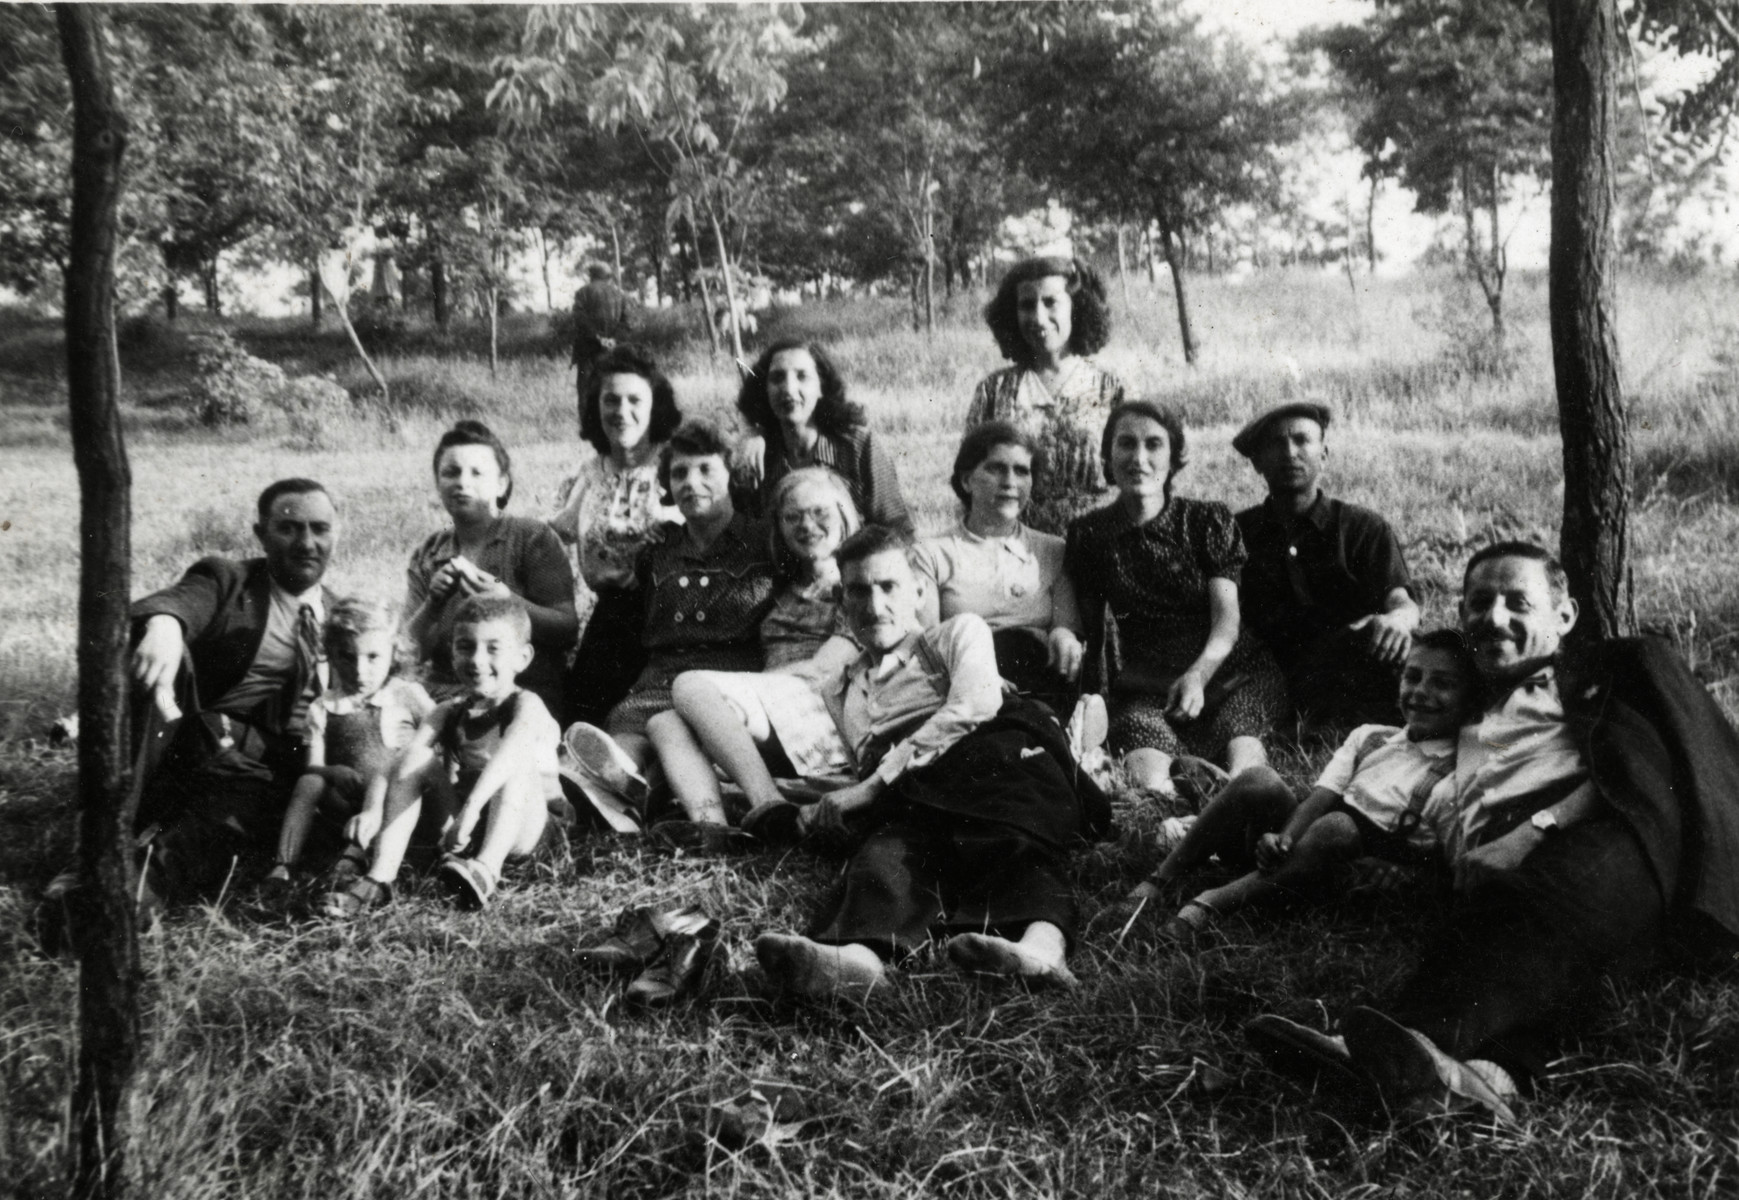 Several Jewish families who had lived together in temporary living quarters after their expulsion to Haskovo, relax on the grass.  Reine Behar and her parents are pictured in the center.